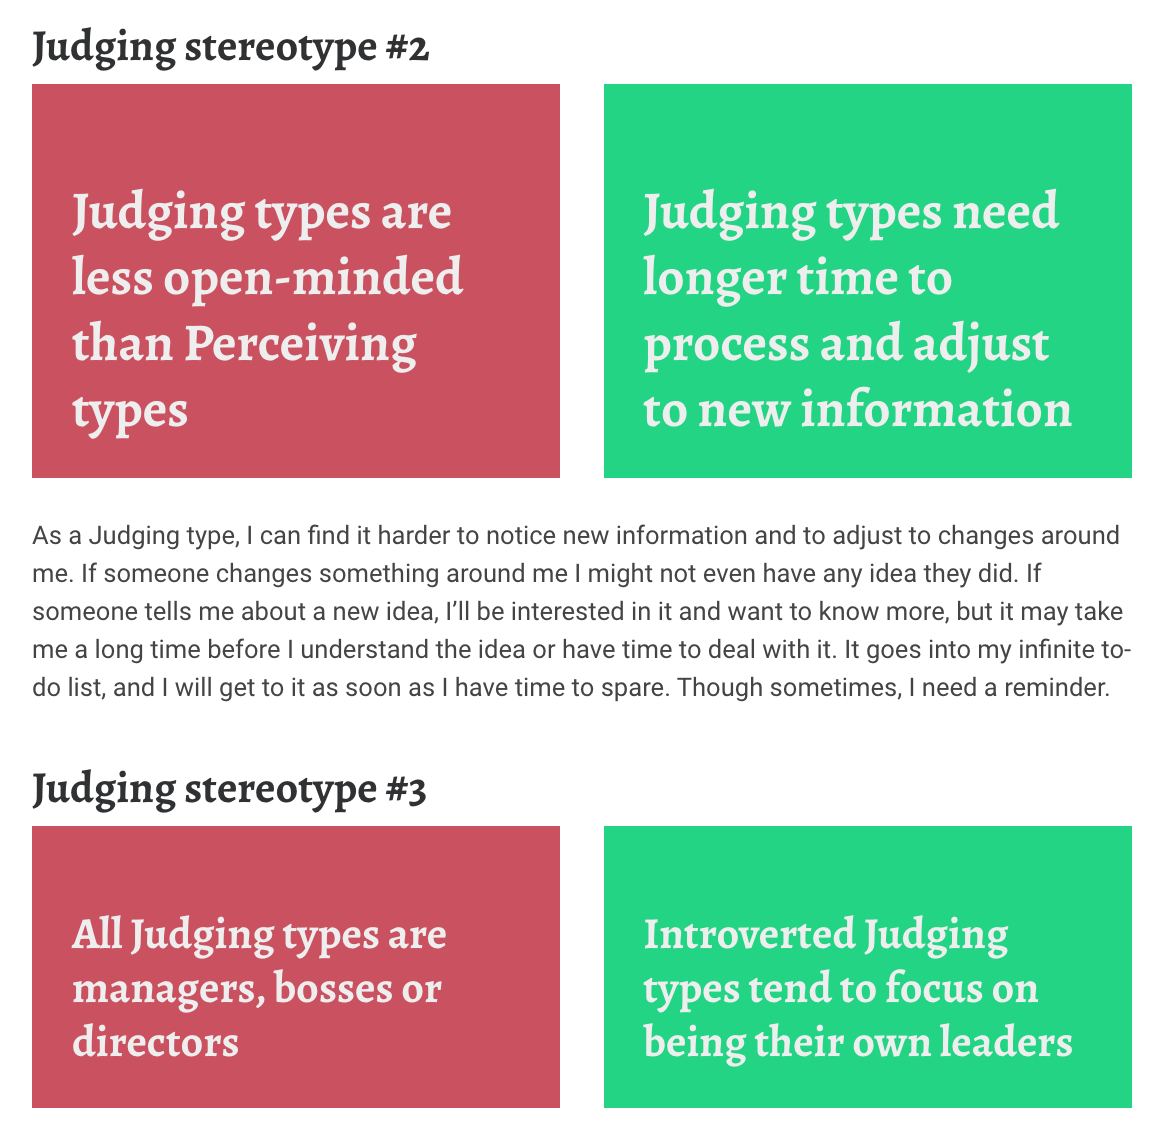 16 personalities judging stereotypes